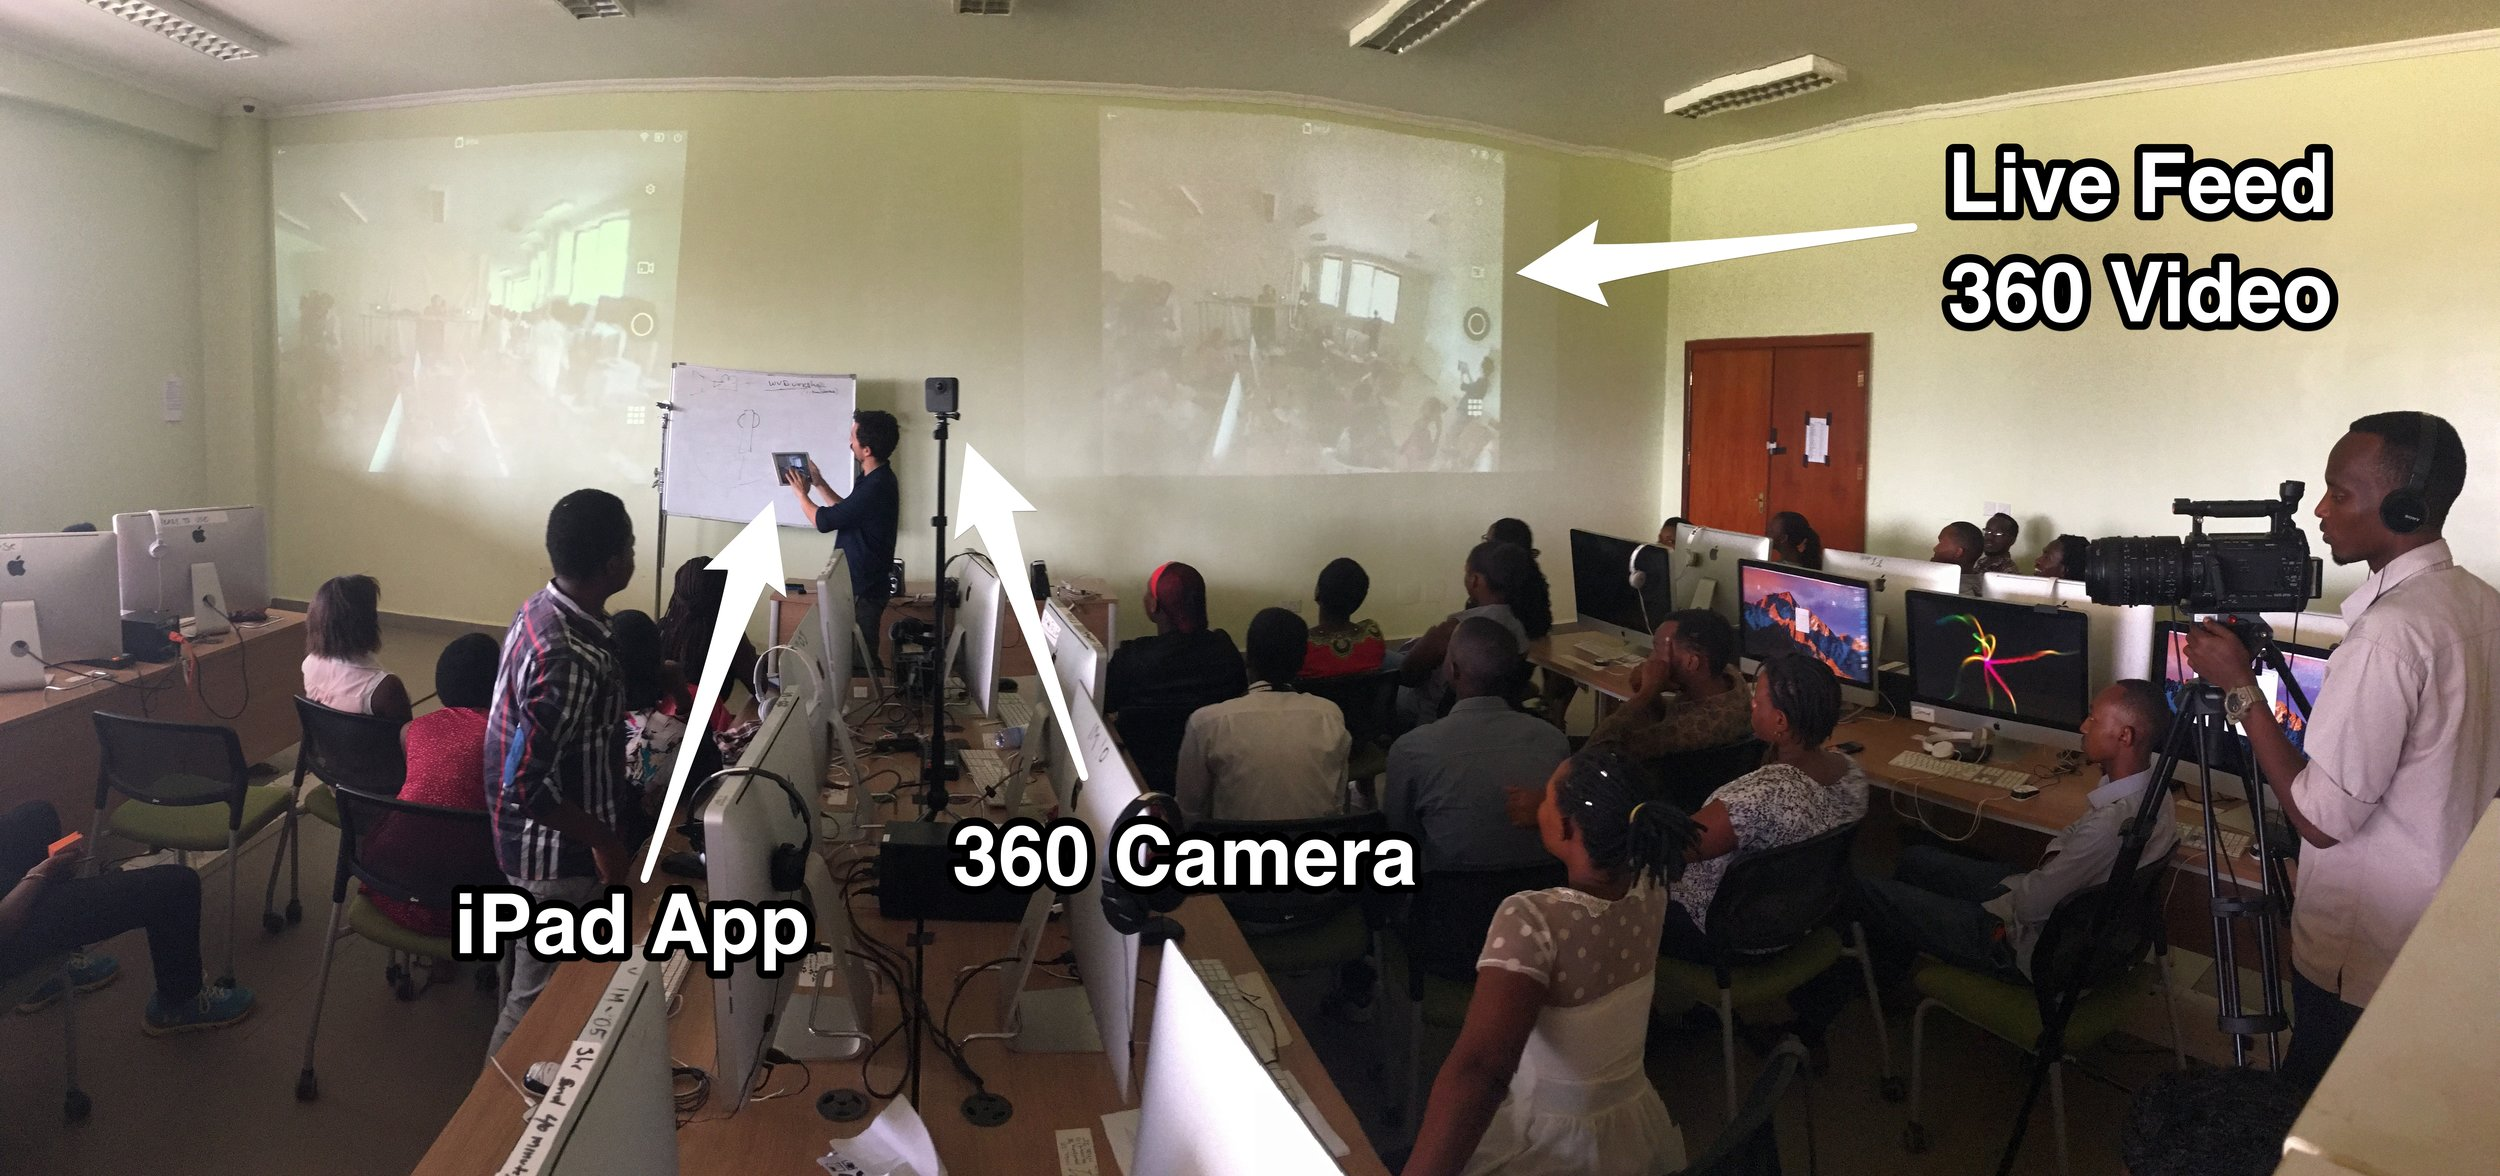 The full demonstration with Nicolas Cuellar, GoPro Fusion camera connected to the iPad GoPro App, being seen live on the projectors in the lab (thanks to Screen Mirroring on an AppleTV).